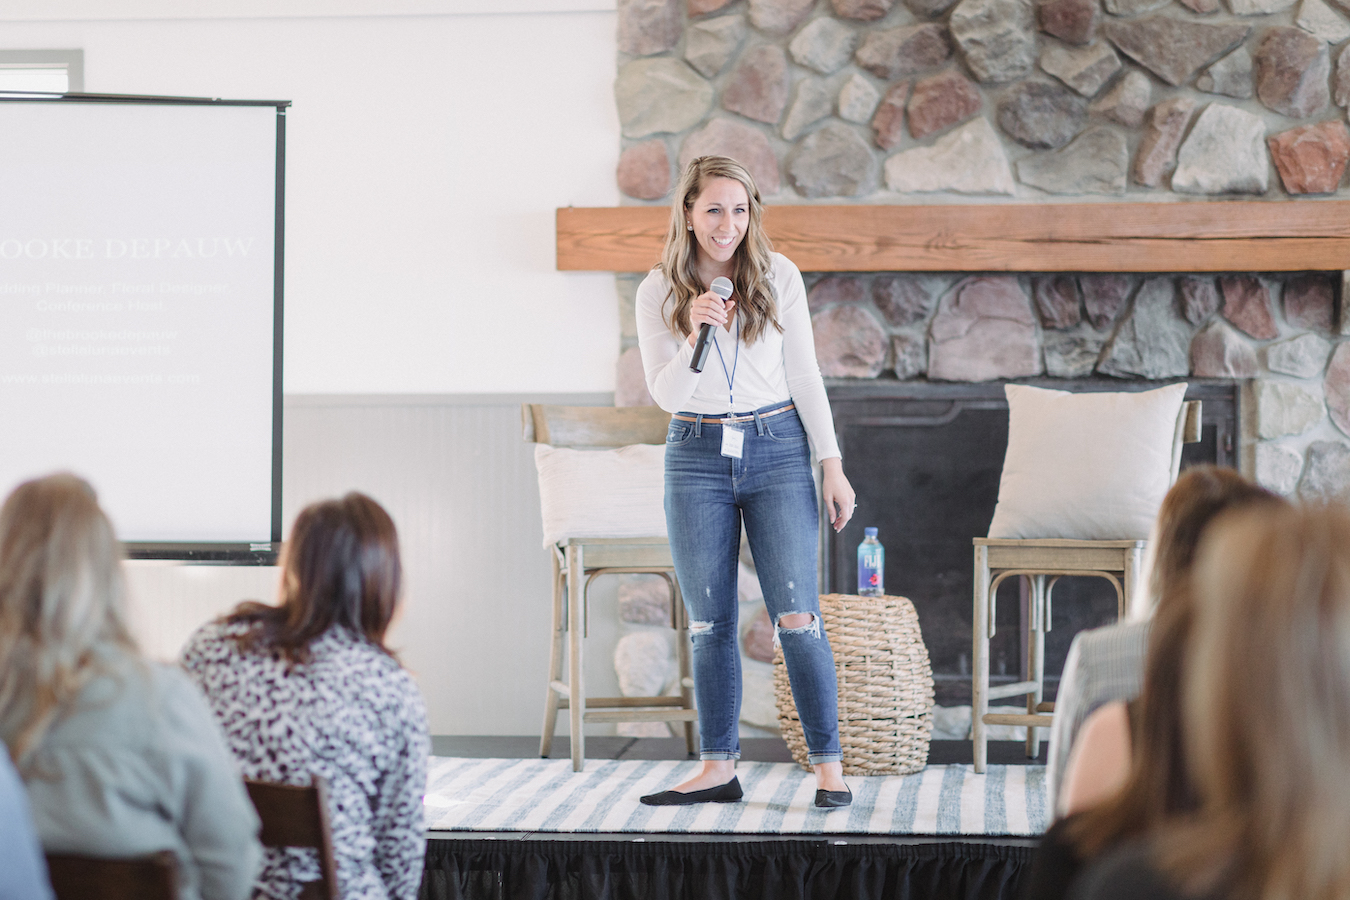 Brooke DePauw on stage speaking at The Haven Conference in West Olive, Michigan